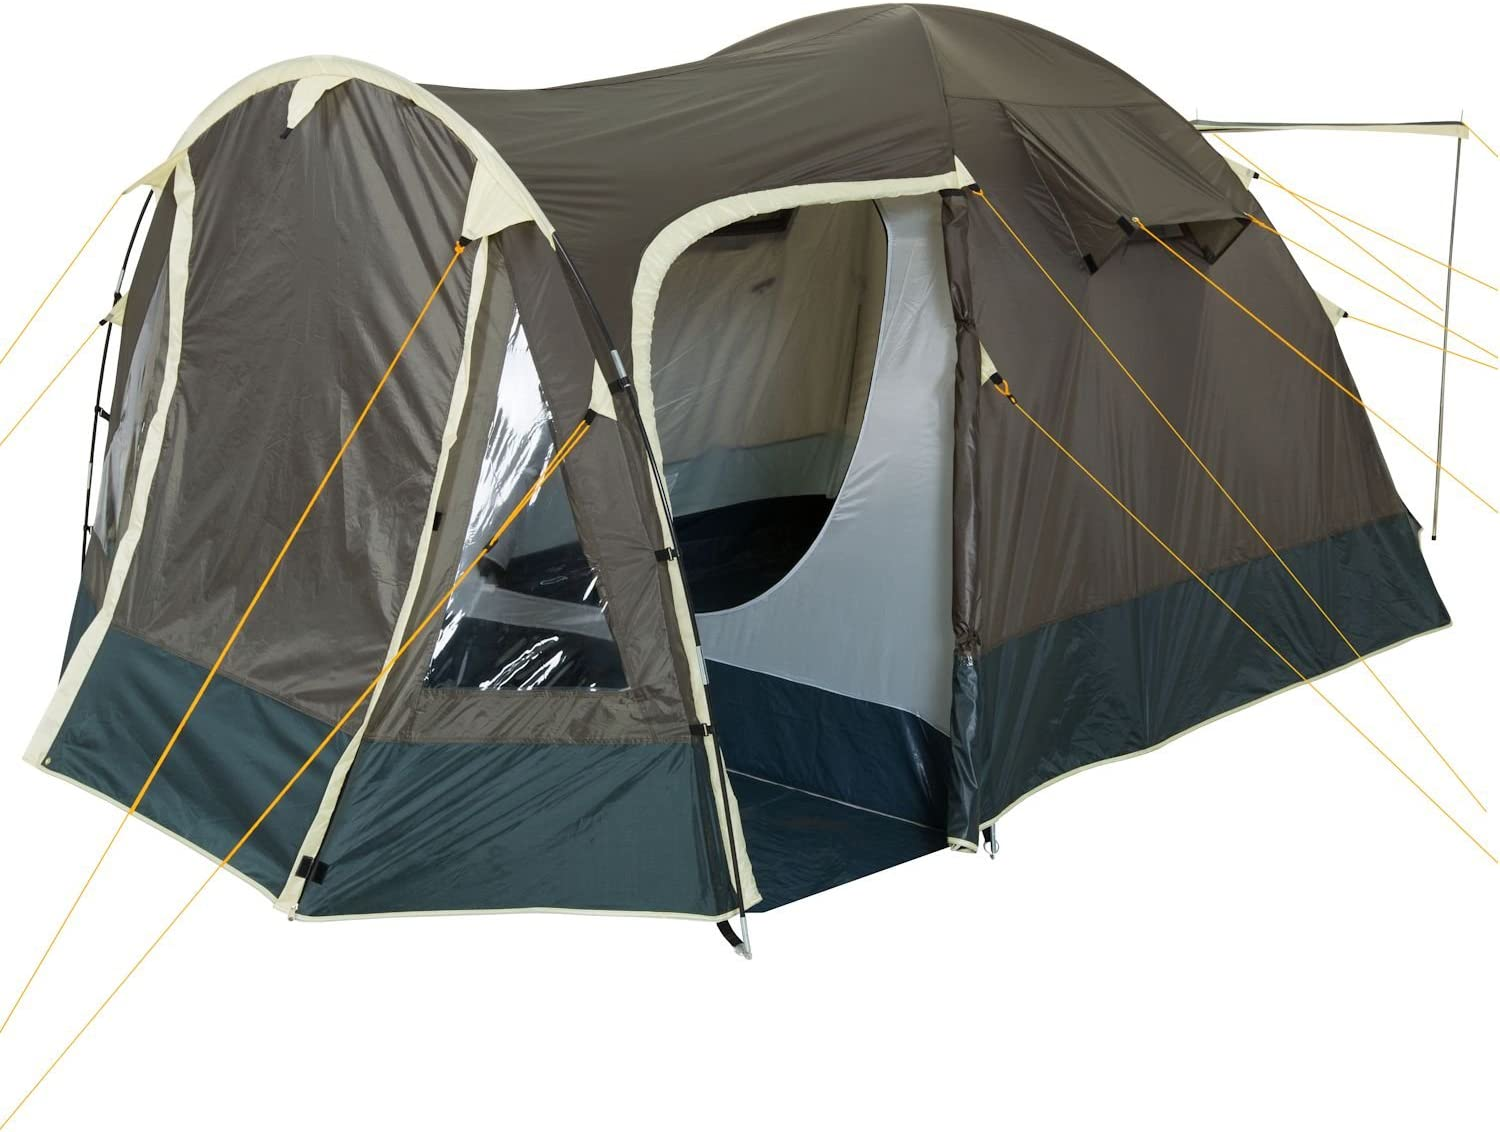 CampFeuer® IglooDome Tent with Porch